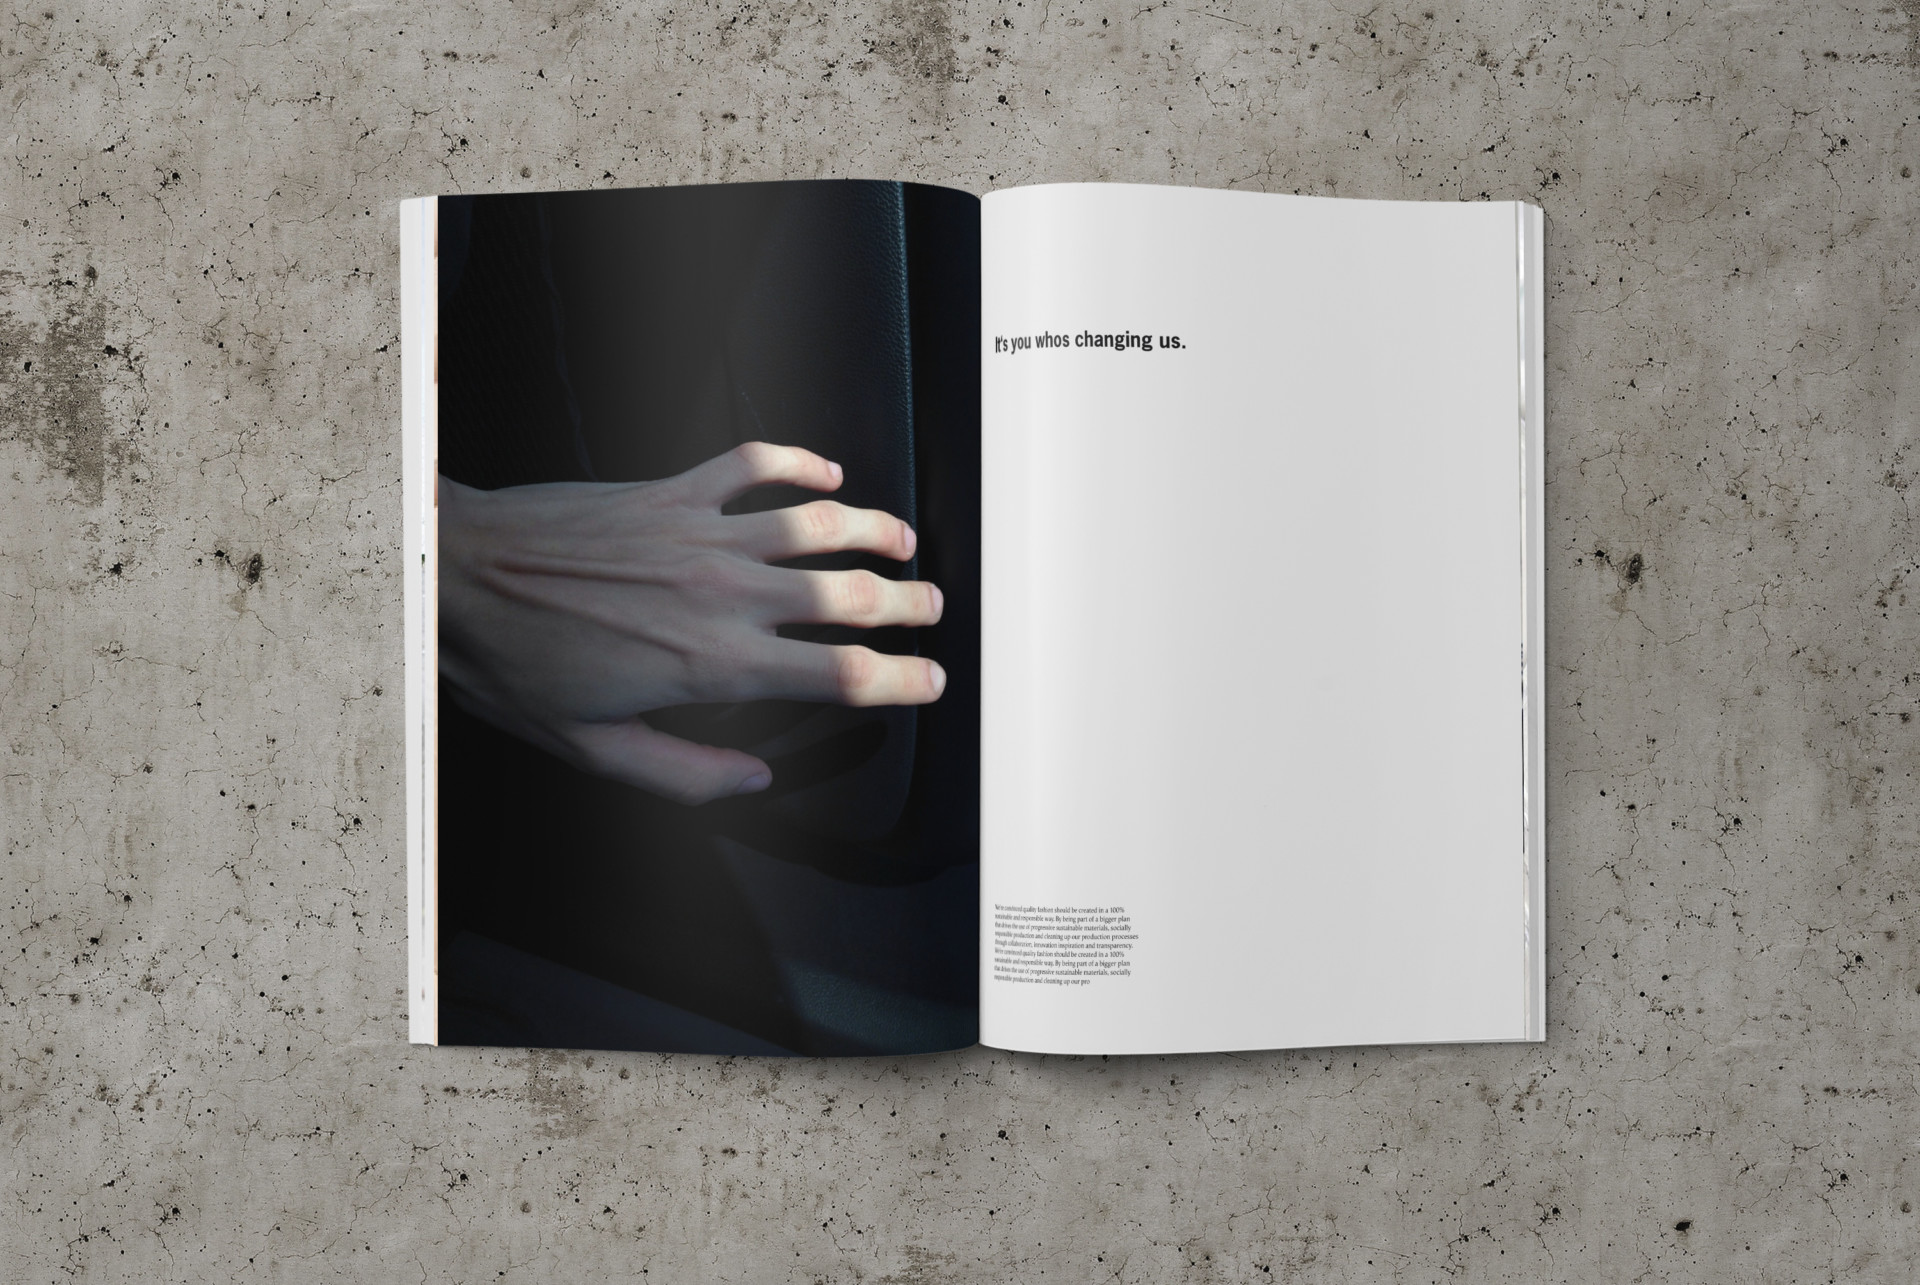 STUDIO-LZ Corporate Publishing und Art Direction